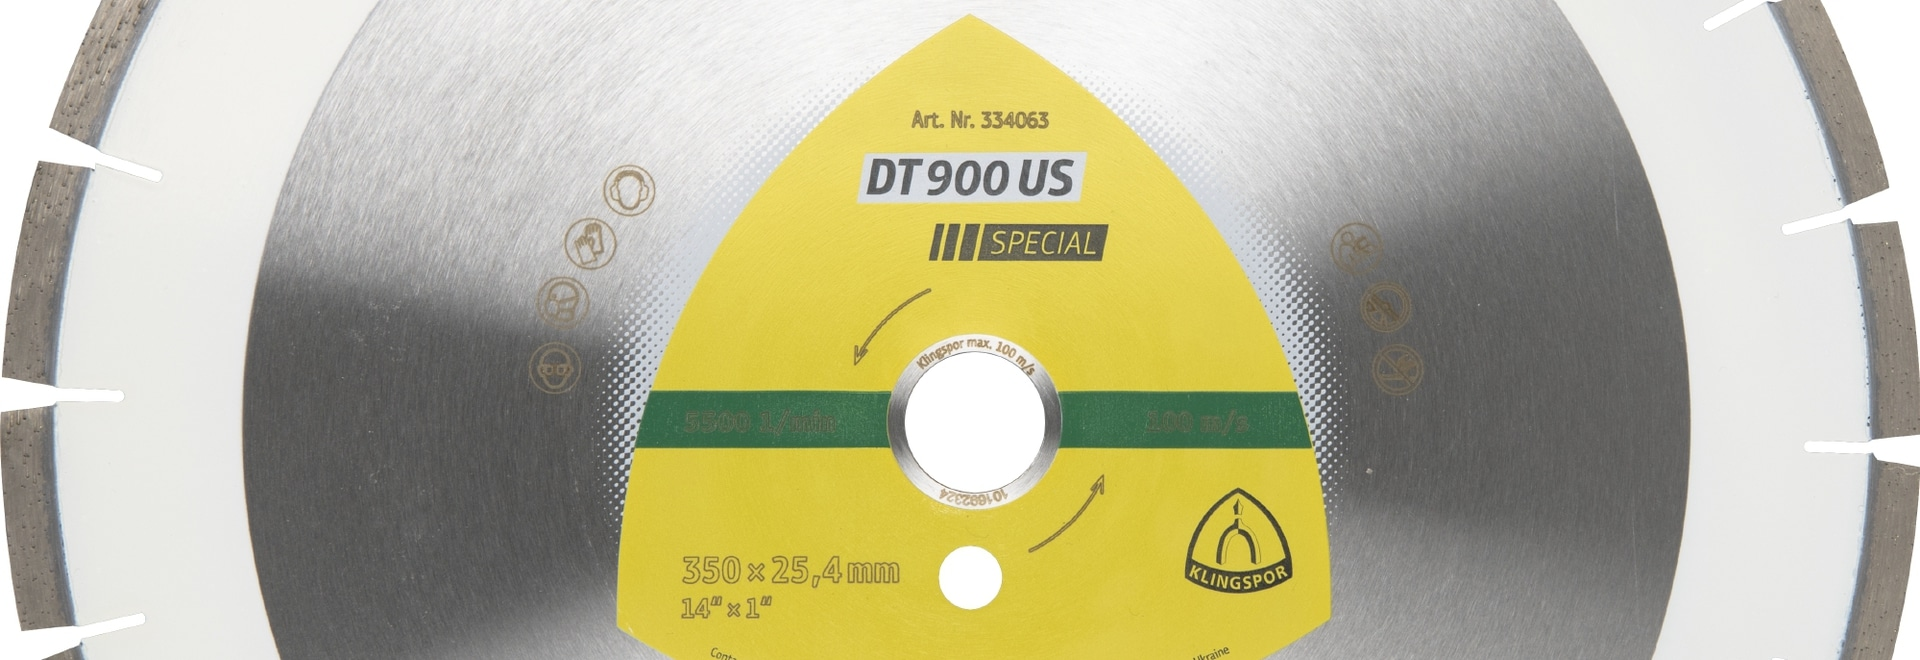 DT 900 US Special